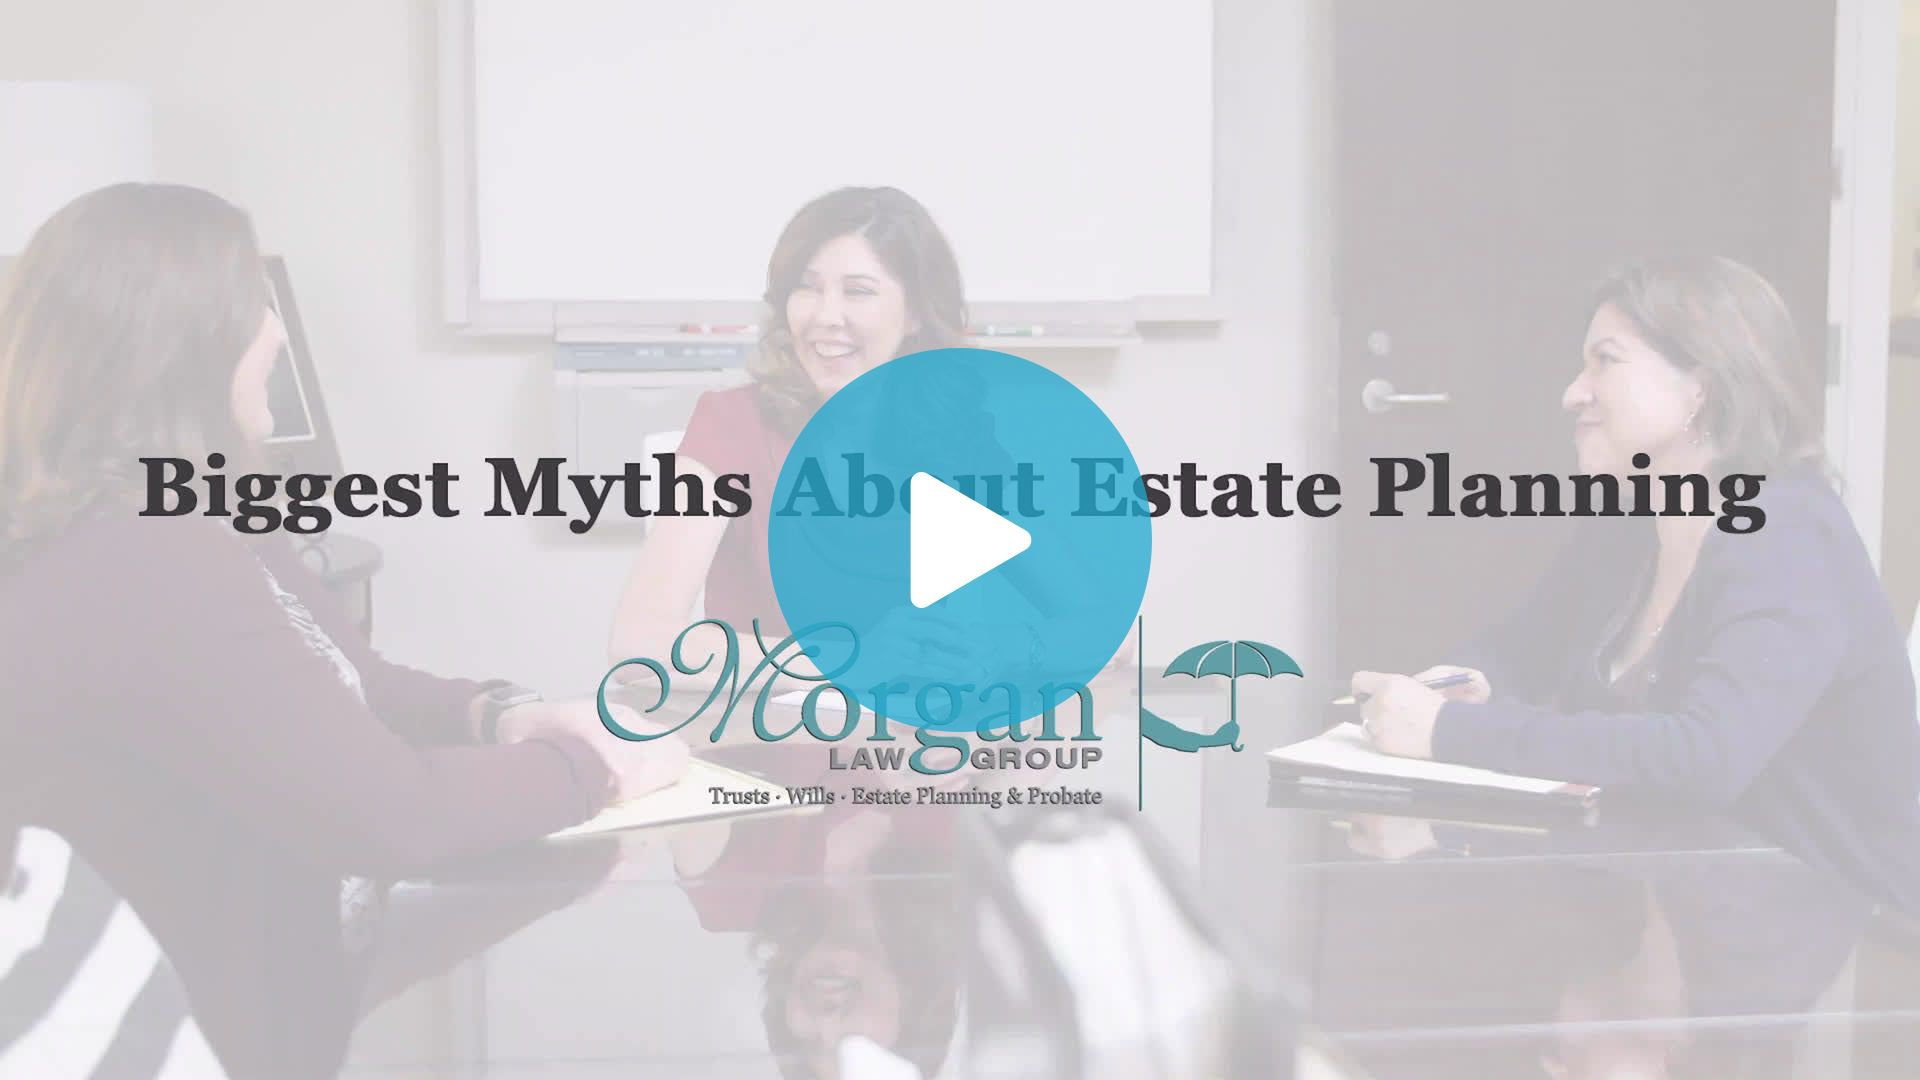 16.-Biggest-myths-about-estate-planning